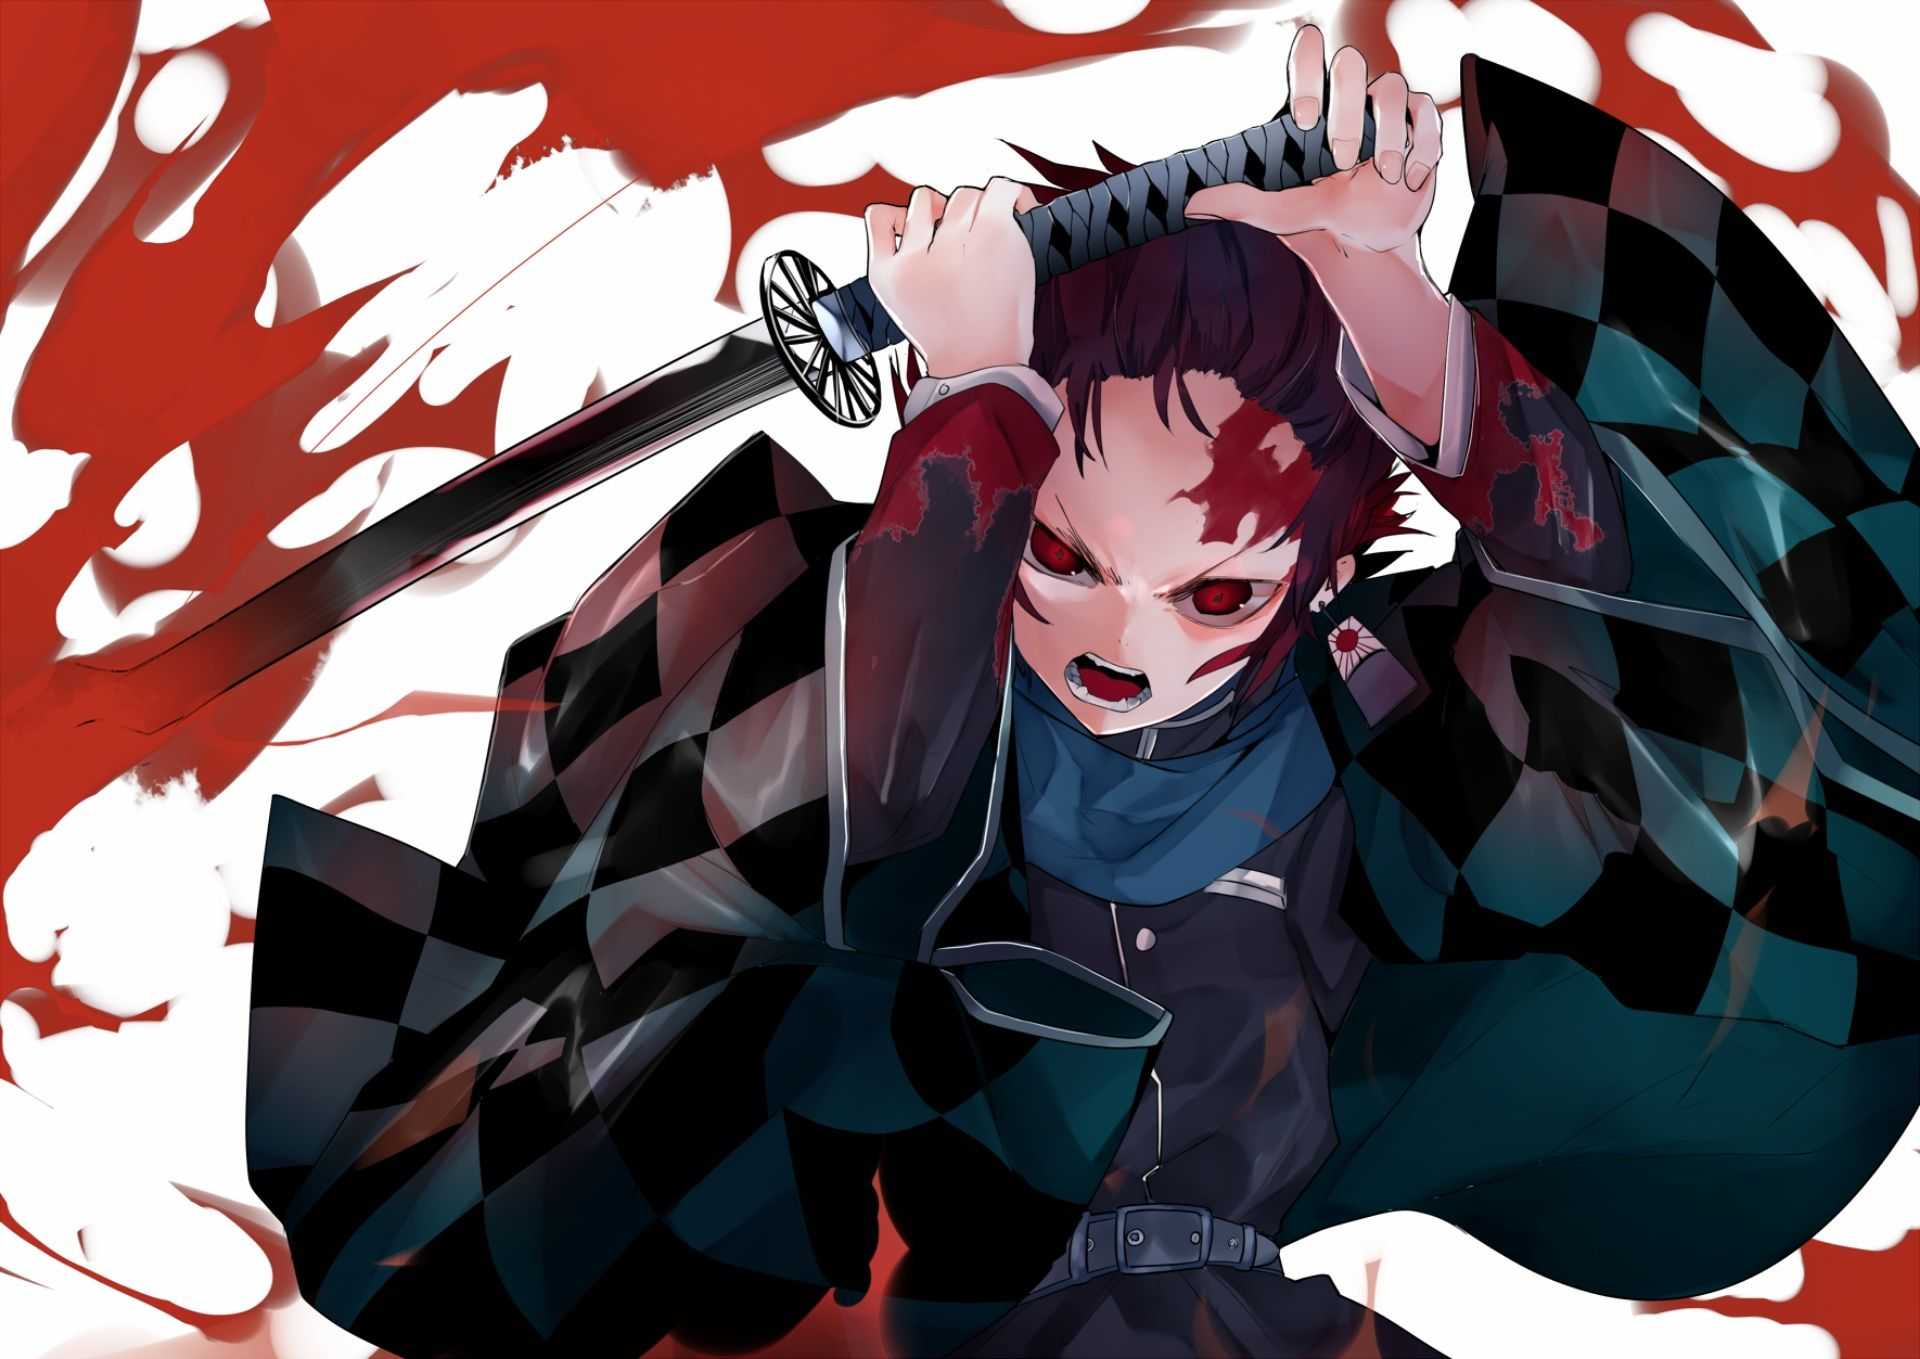 Demon Slayer Kimetsu No Yaiba Wallpapers Top Free Demon Slayer